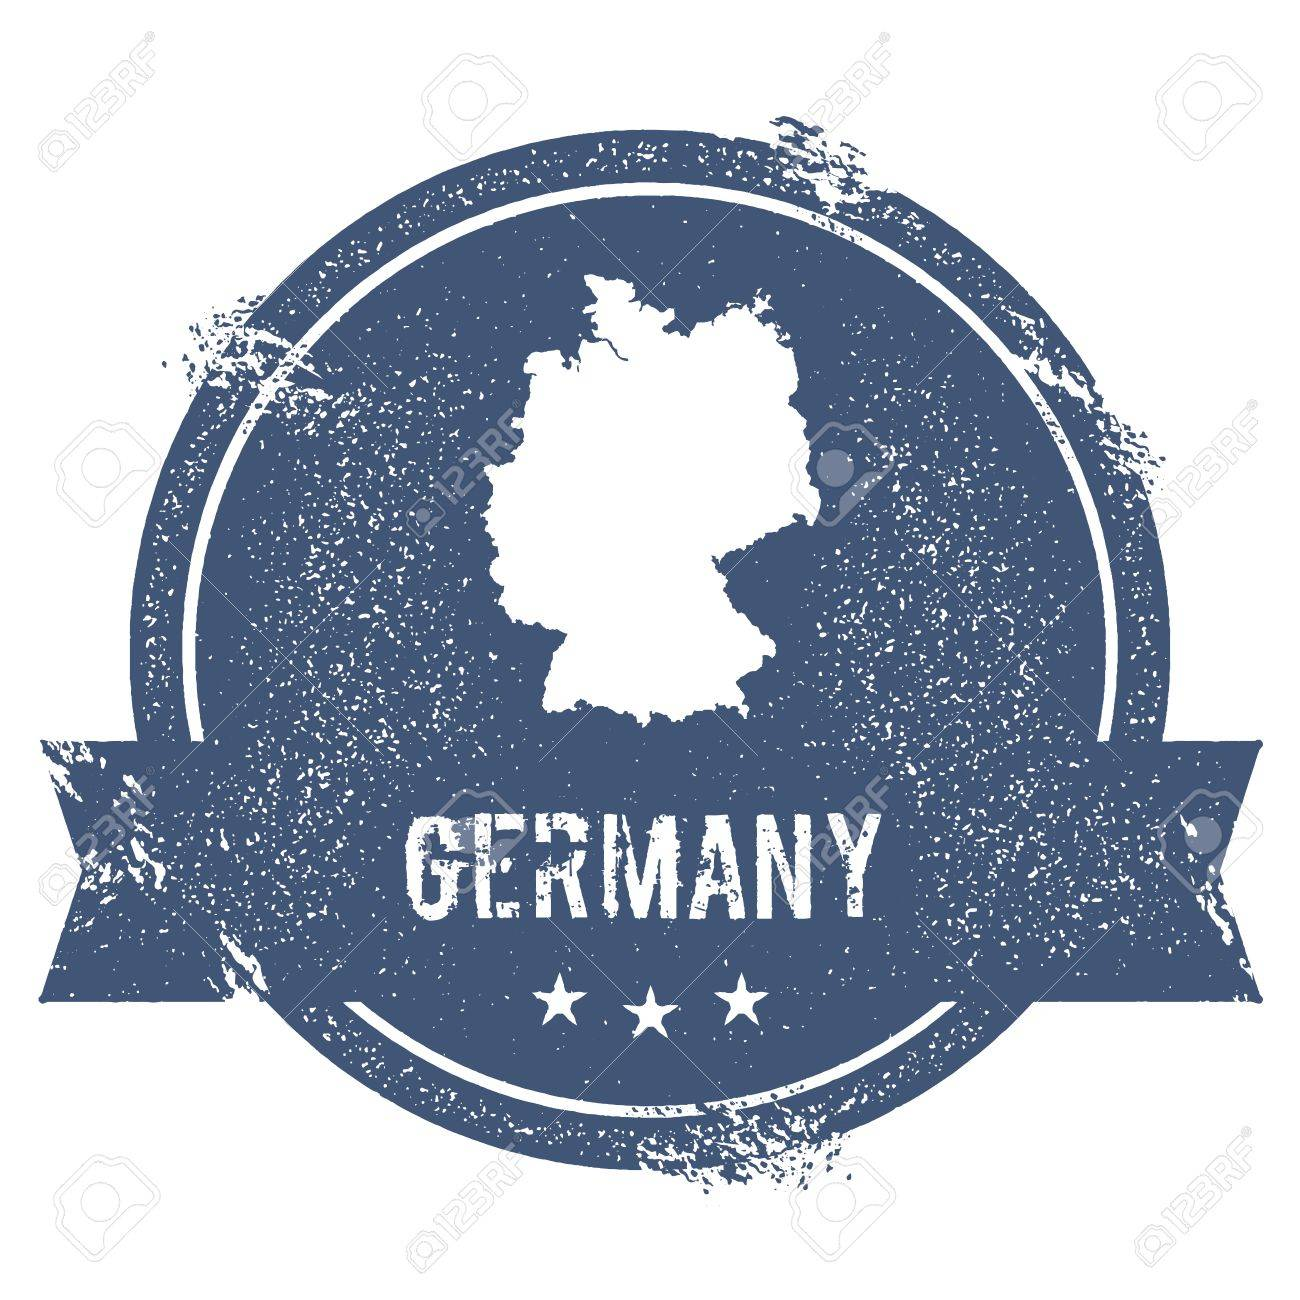 Germany Mark Travel Rubber Stamp With The Name And Map Of Germany - World map to mark travels